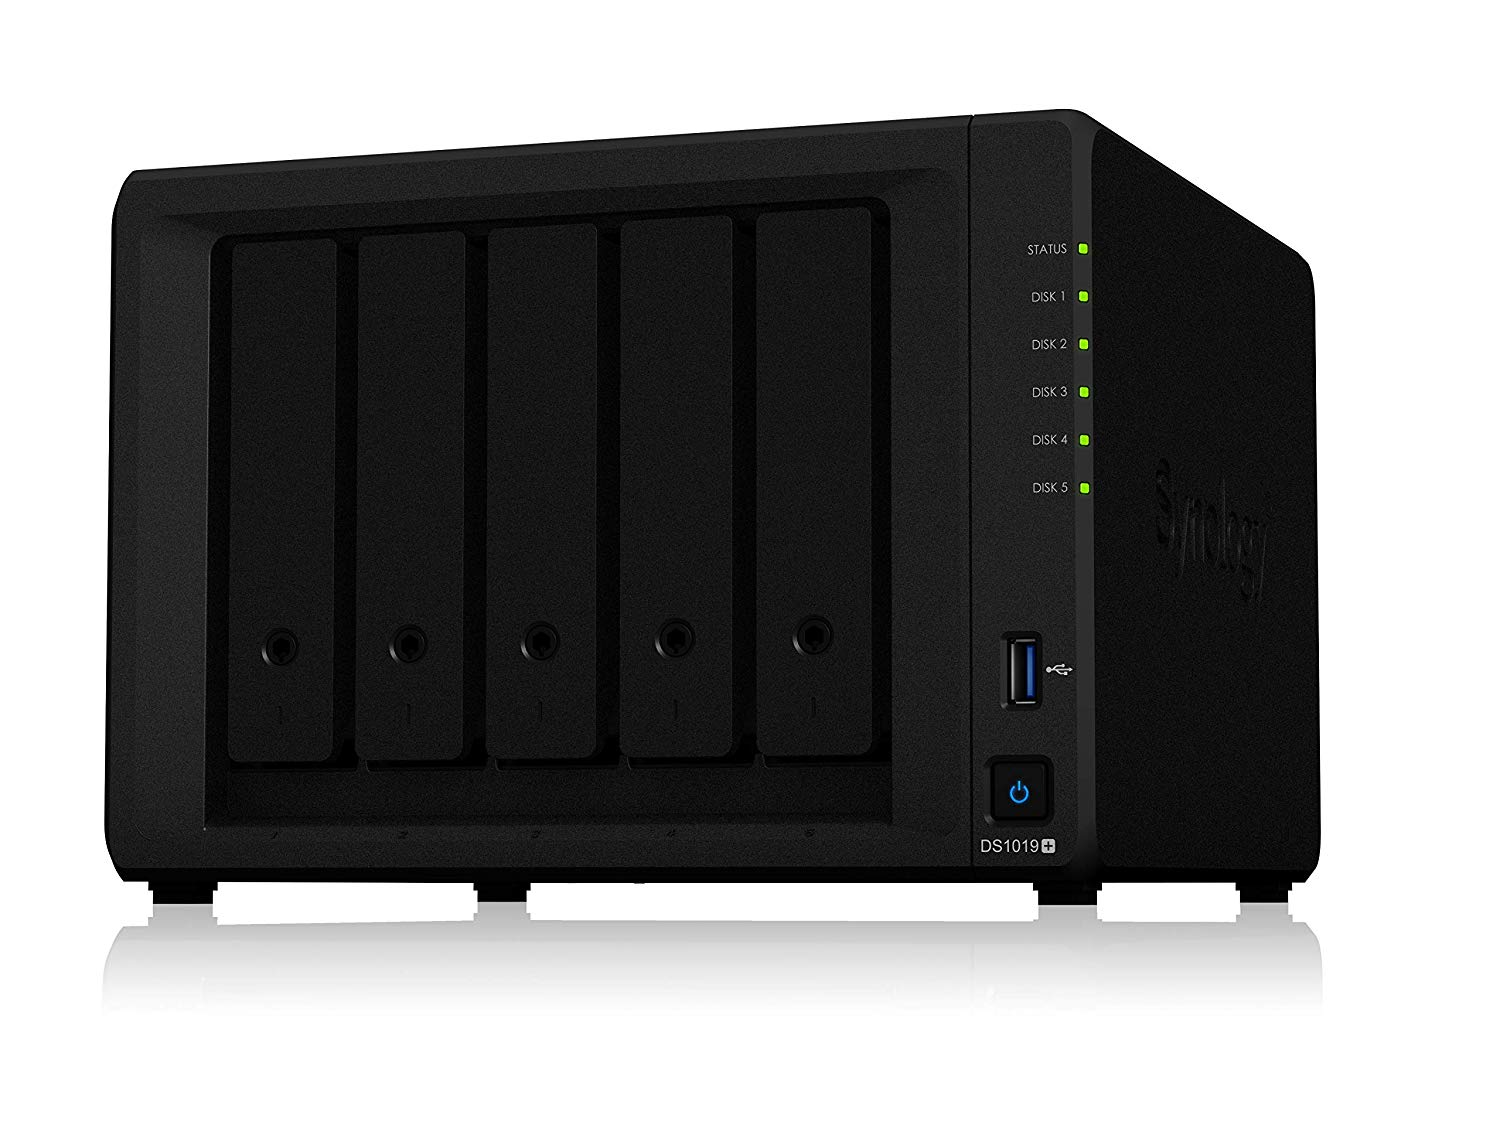 synology diskstation ds1019 review image